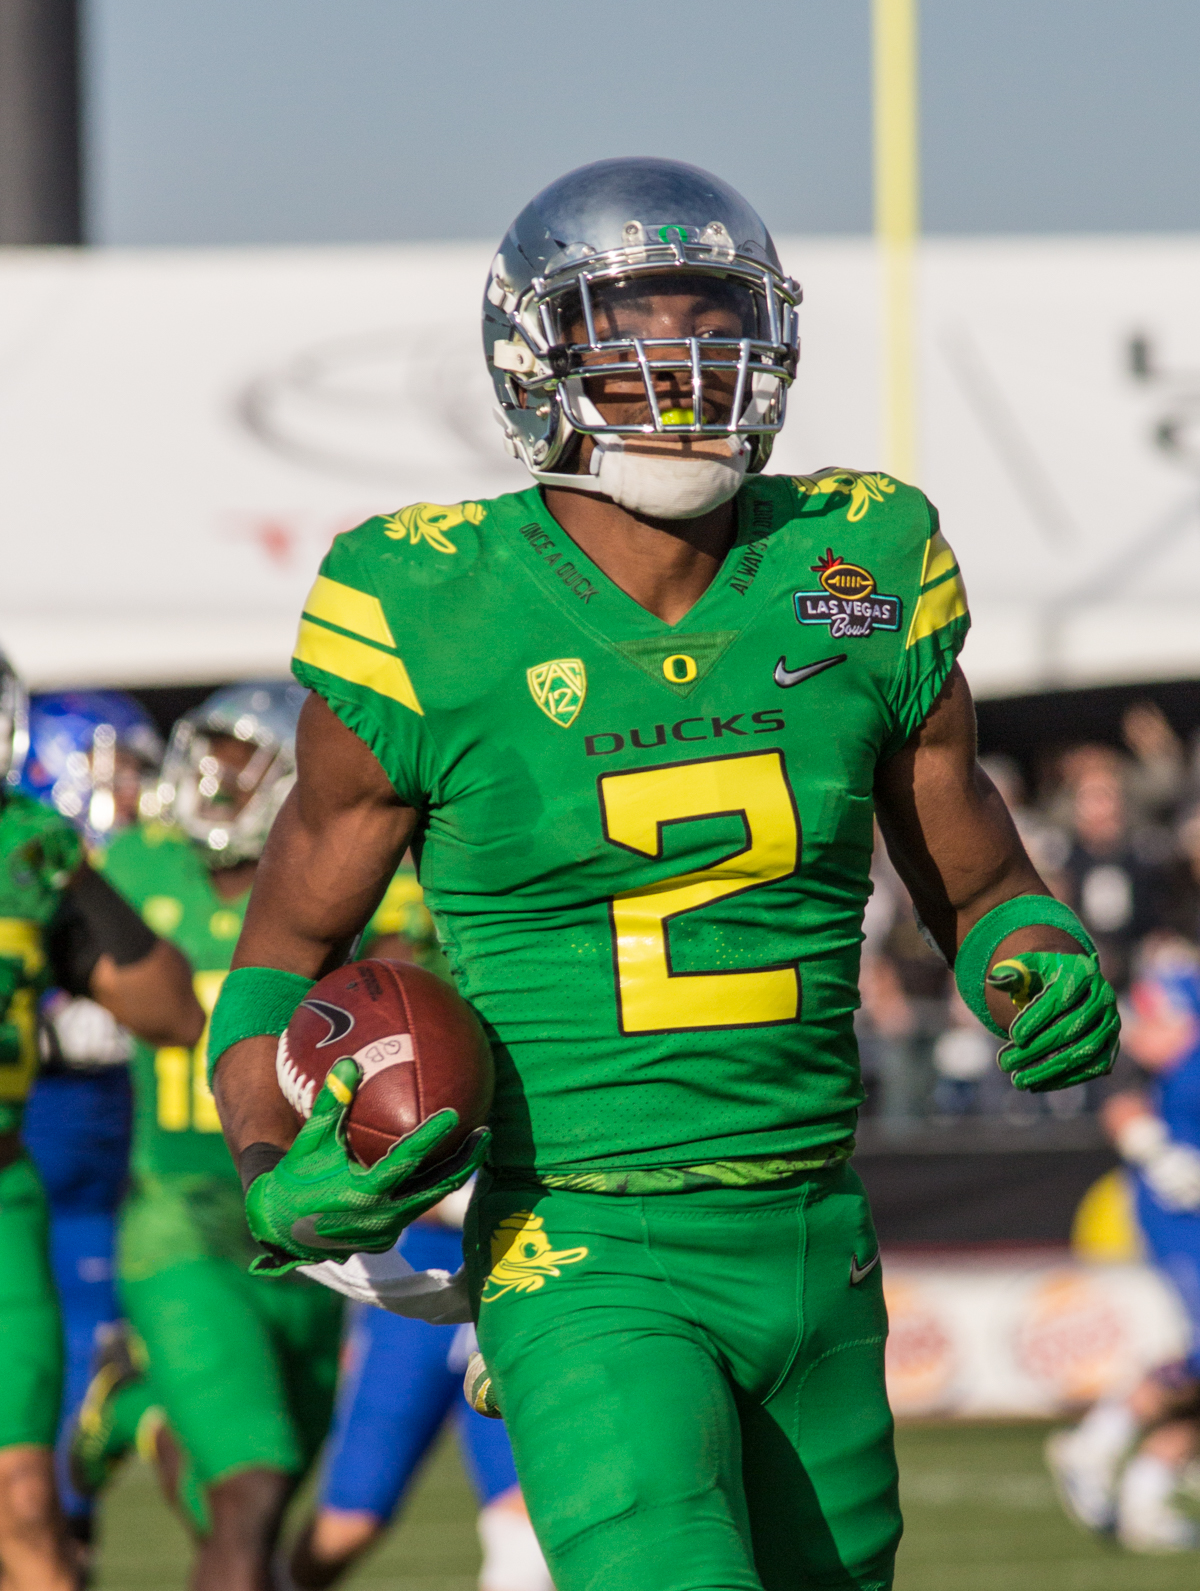 Oregon safety Tyree Robinson (#2) runs the ball for a touchdownfollowing a Boise State fumble. The Boise State Broncos defeated the Oregon Ducks 38 to 28 in the 2017 Las Vegas Bowl at Sam Boyd Stadium in Las Vegas, Nevada on Saturday December 17, 2017. The Las Vegas Bowl served as the first test for Oregon's new Head Coach Mario Cristobal following the loss of former Head Coach Willie Taggart to Florida State University earlier this month. Photo by Ben Lonergan, Oregon News Lab